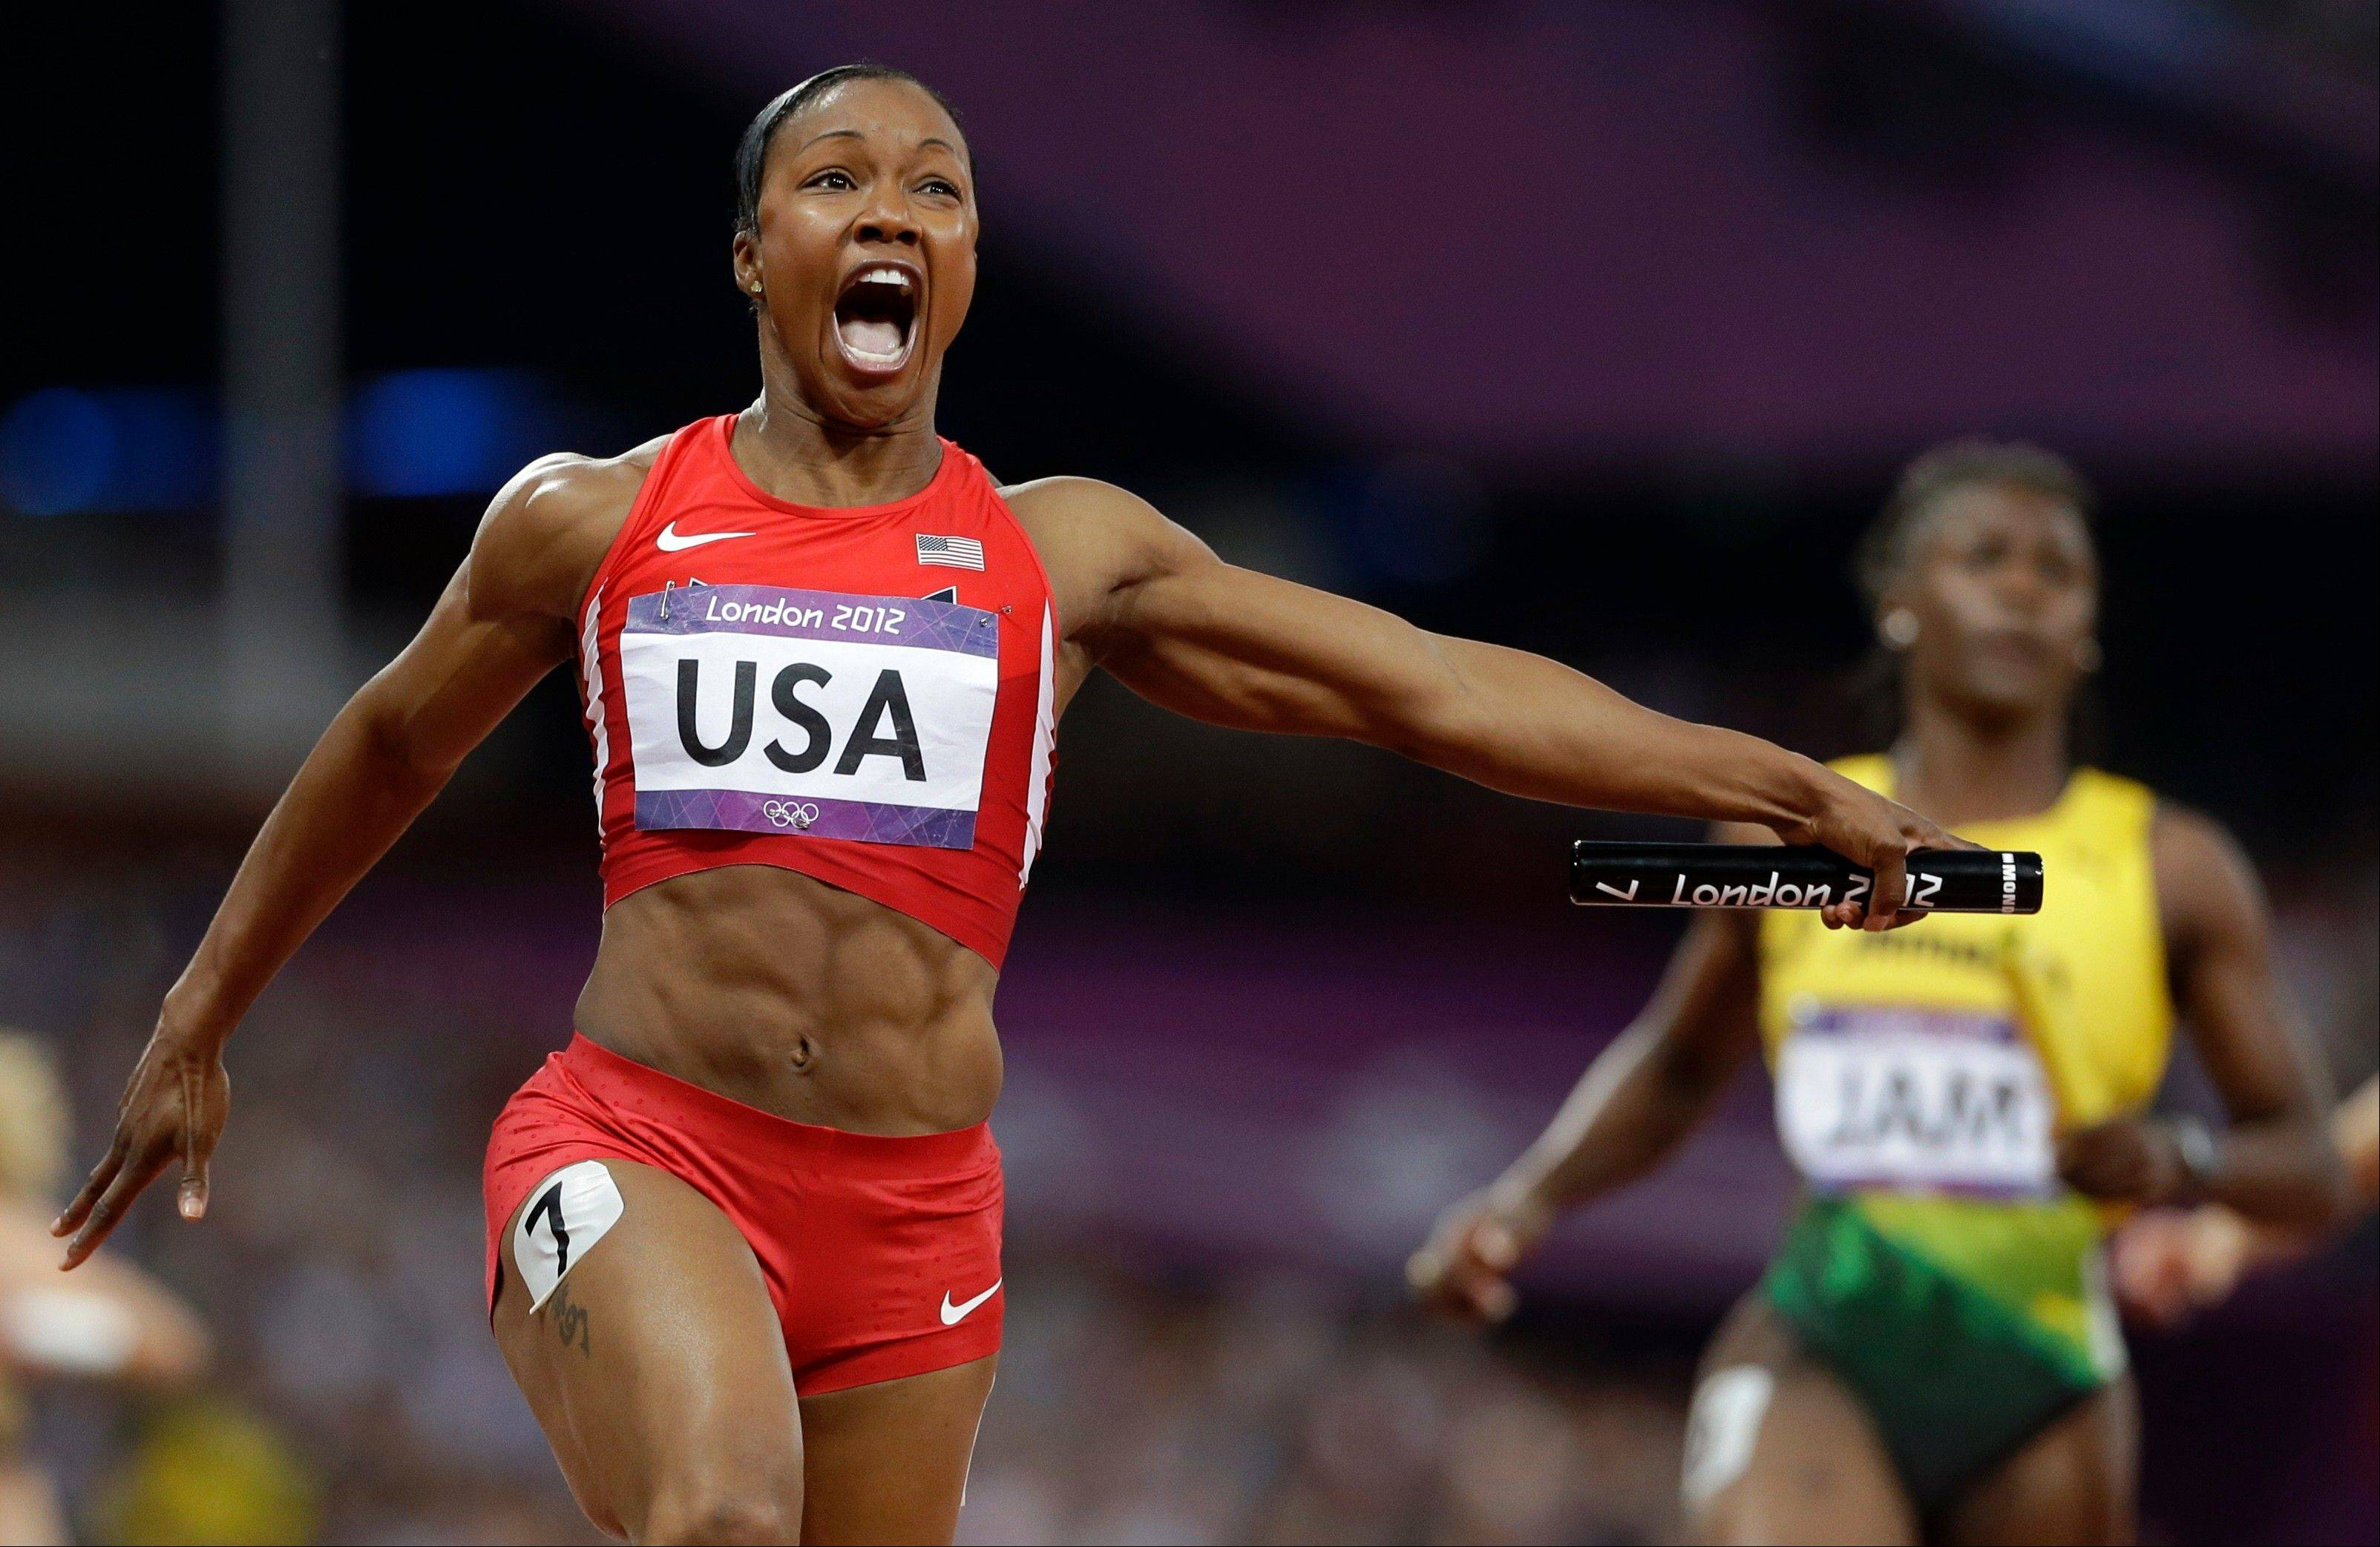 United States' Carmelita Jeter reacts as she crosses the finish line to win the women's 4 x 100-meter relay during the athletics in the Olympic Stadium at the 2012 Summer Olympics, London, Friday, Aug. 10, 2012. The United States relay team set a new world record with a time of 40.82 seconds.